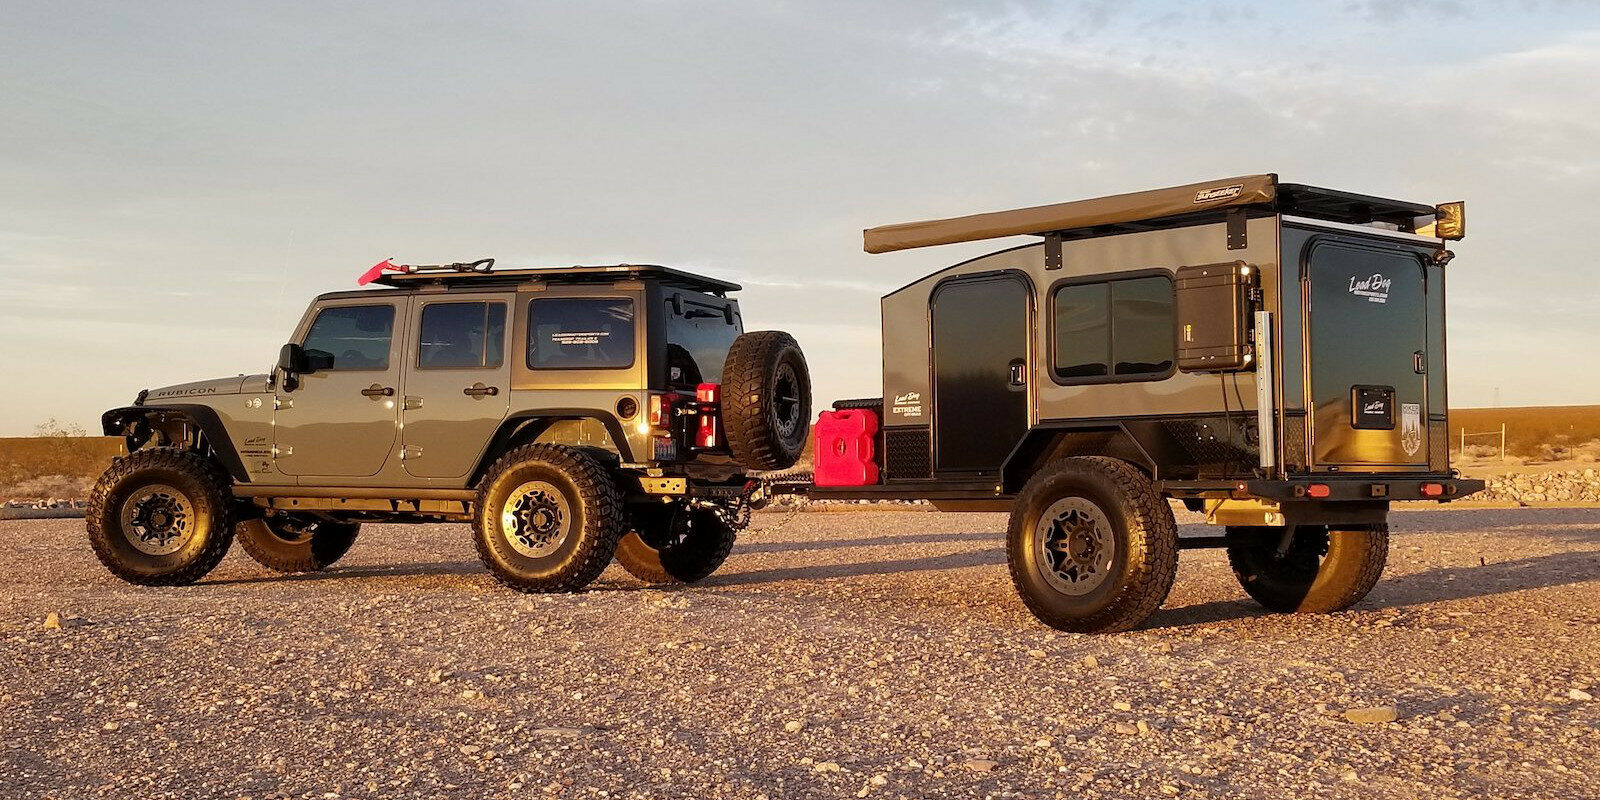 Image of a Rubicon towing a Hiker Trailer